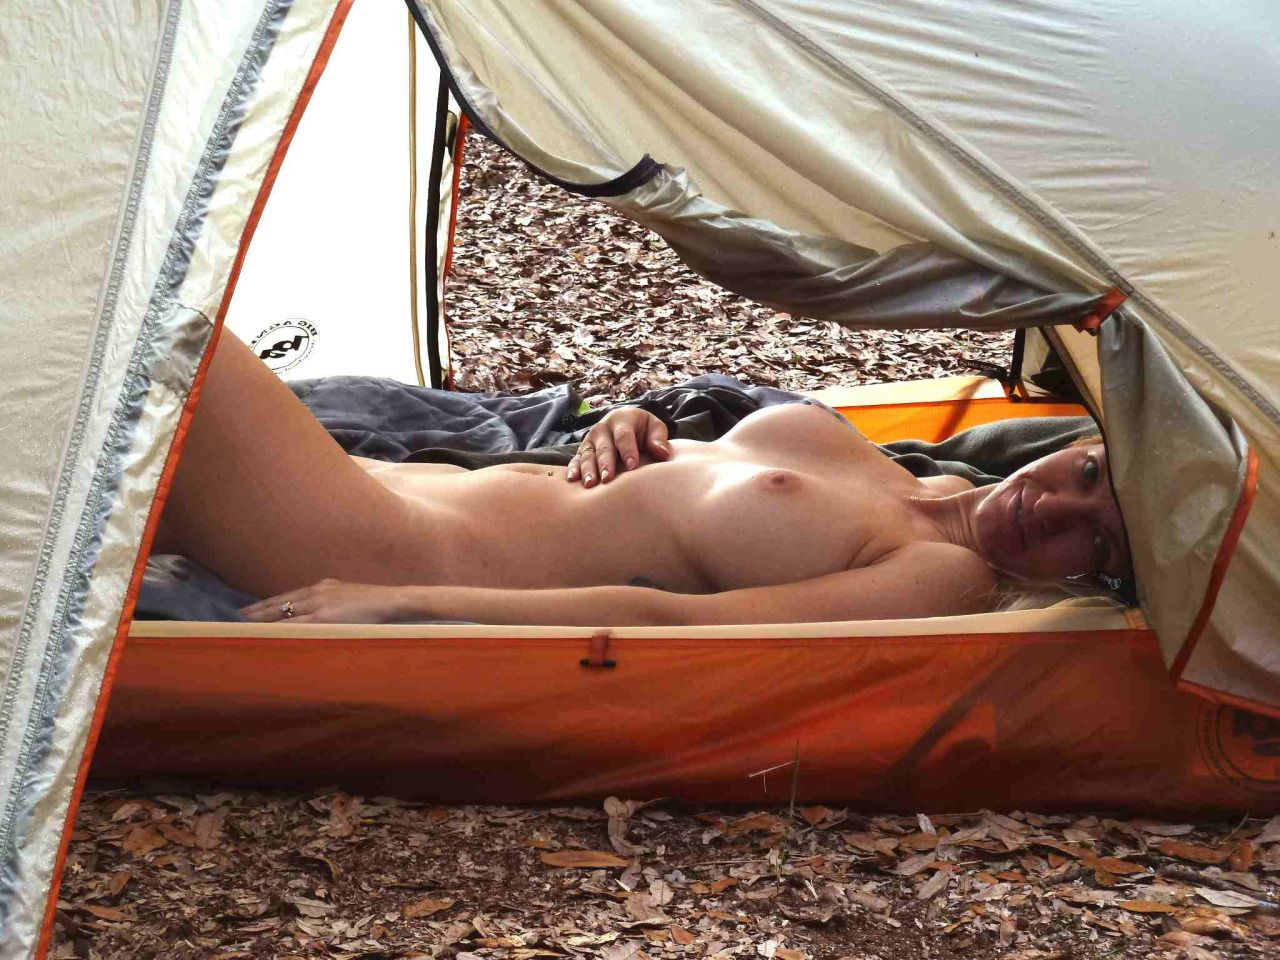 girl-caught-naked-camping-mature-mae-galleries